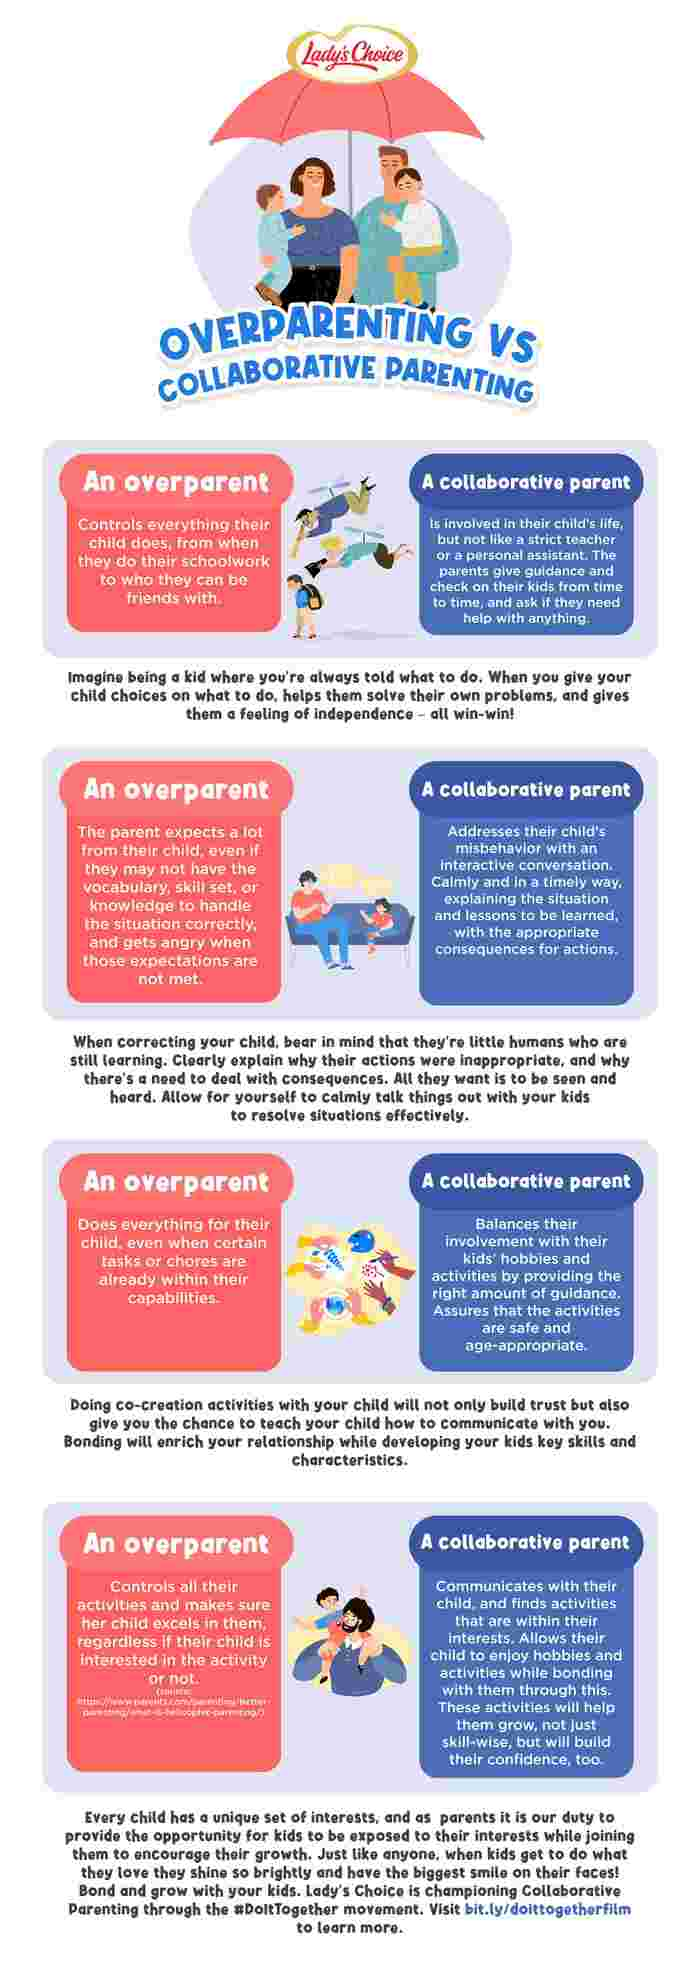 Are you at risk of overparenting your child?